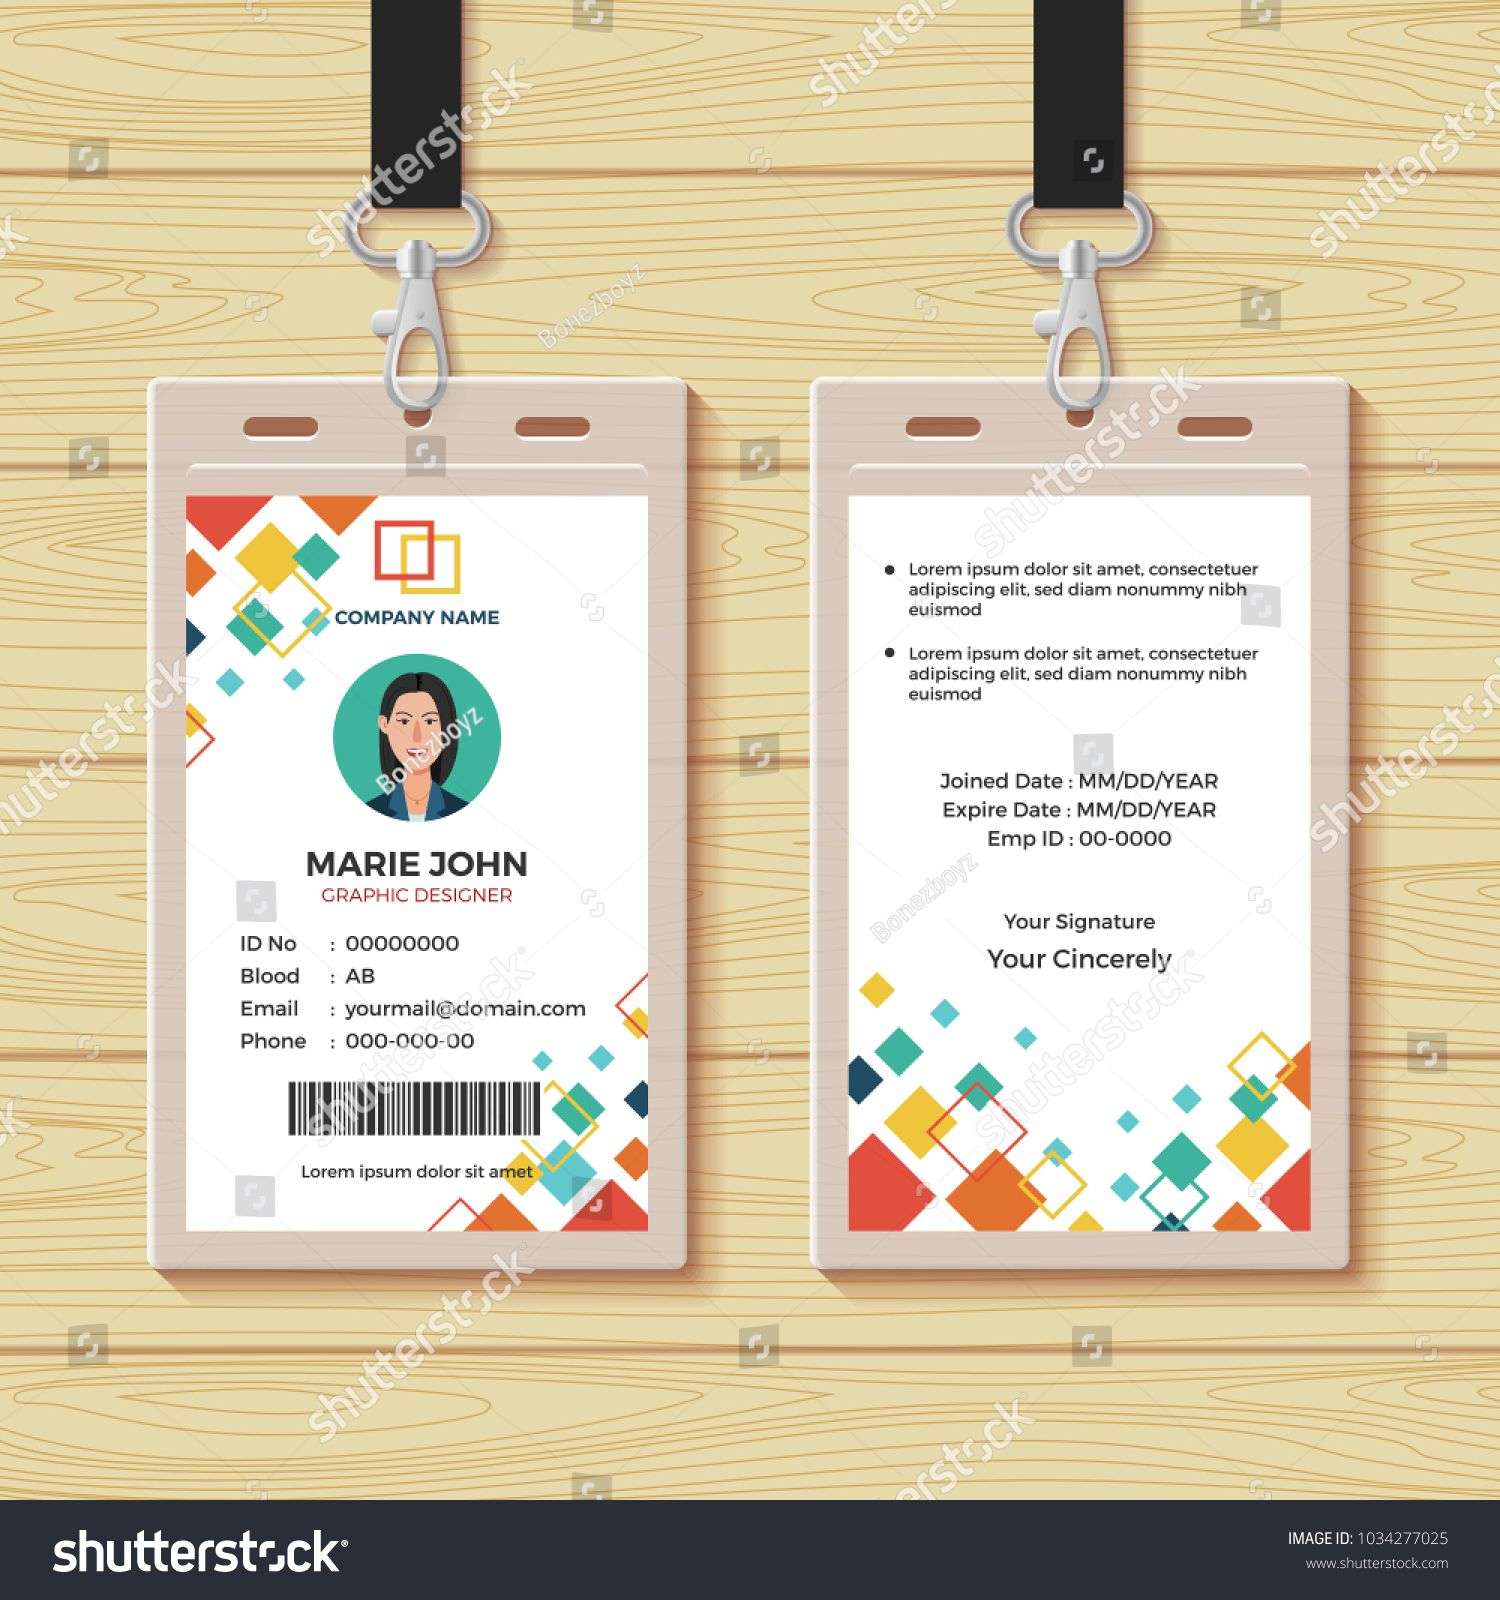 Creative Id Card Template Perfect For Any Types Of Agency Corporate Offices And Companies You Can Also Used This Identity Ca Kartu Nama Kartu Desain Grafis